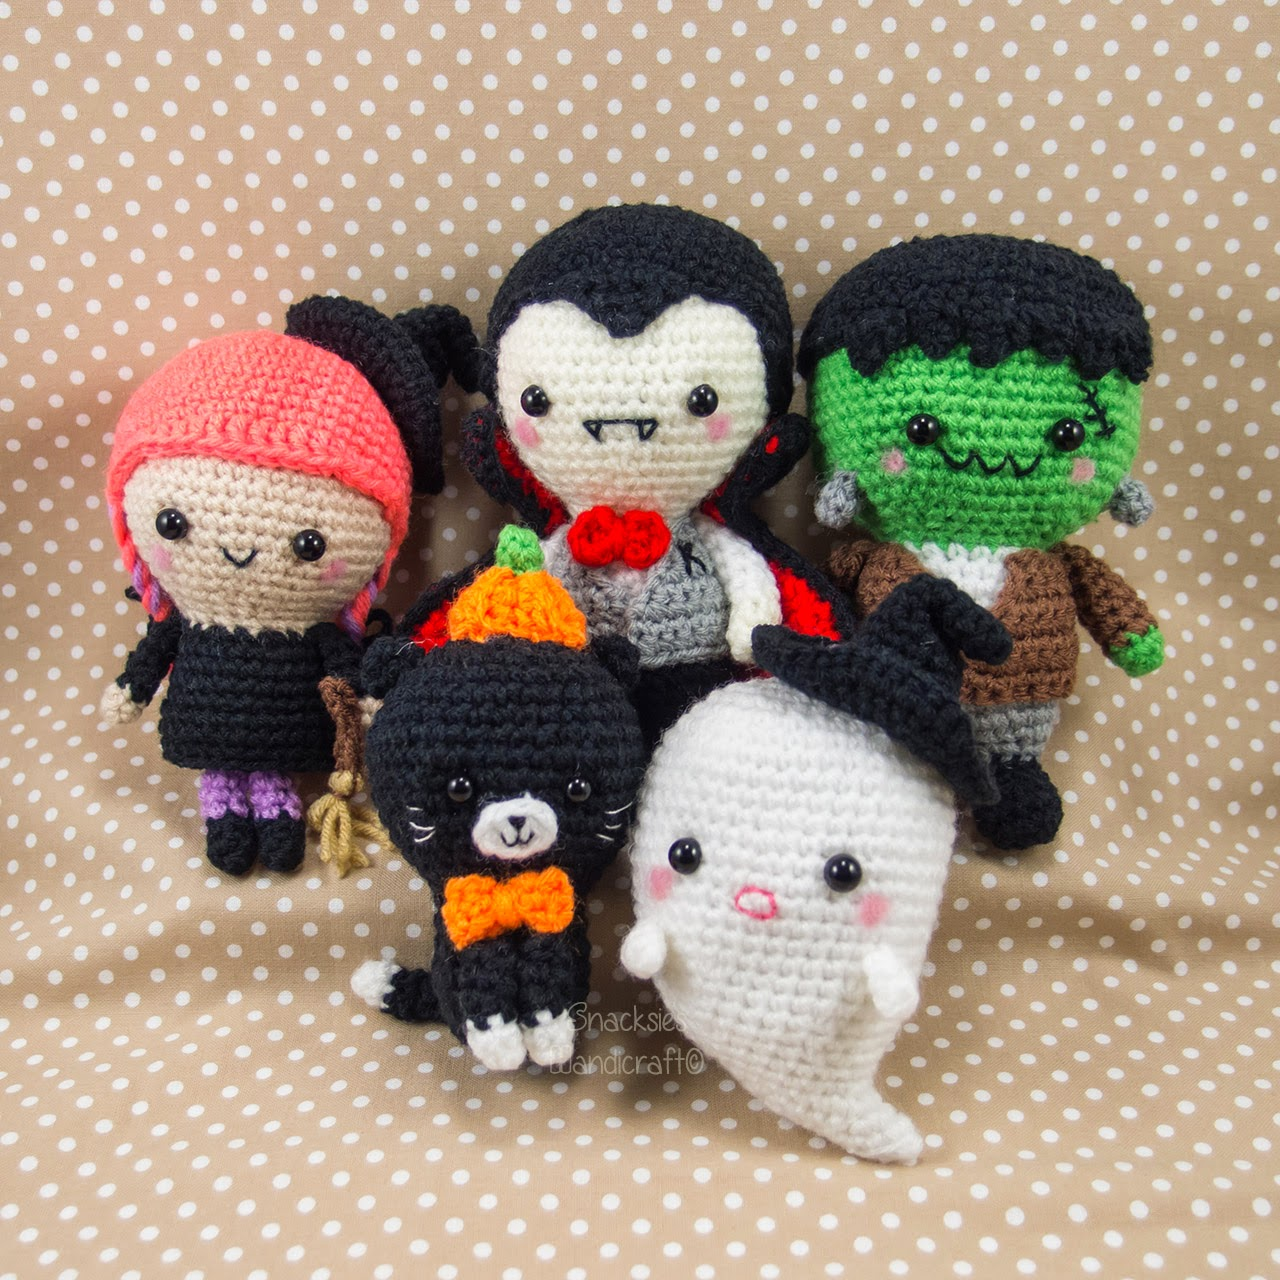 crocheted-halloween-amigurumi